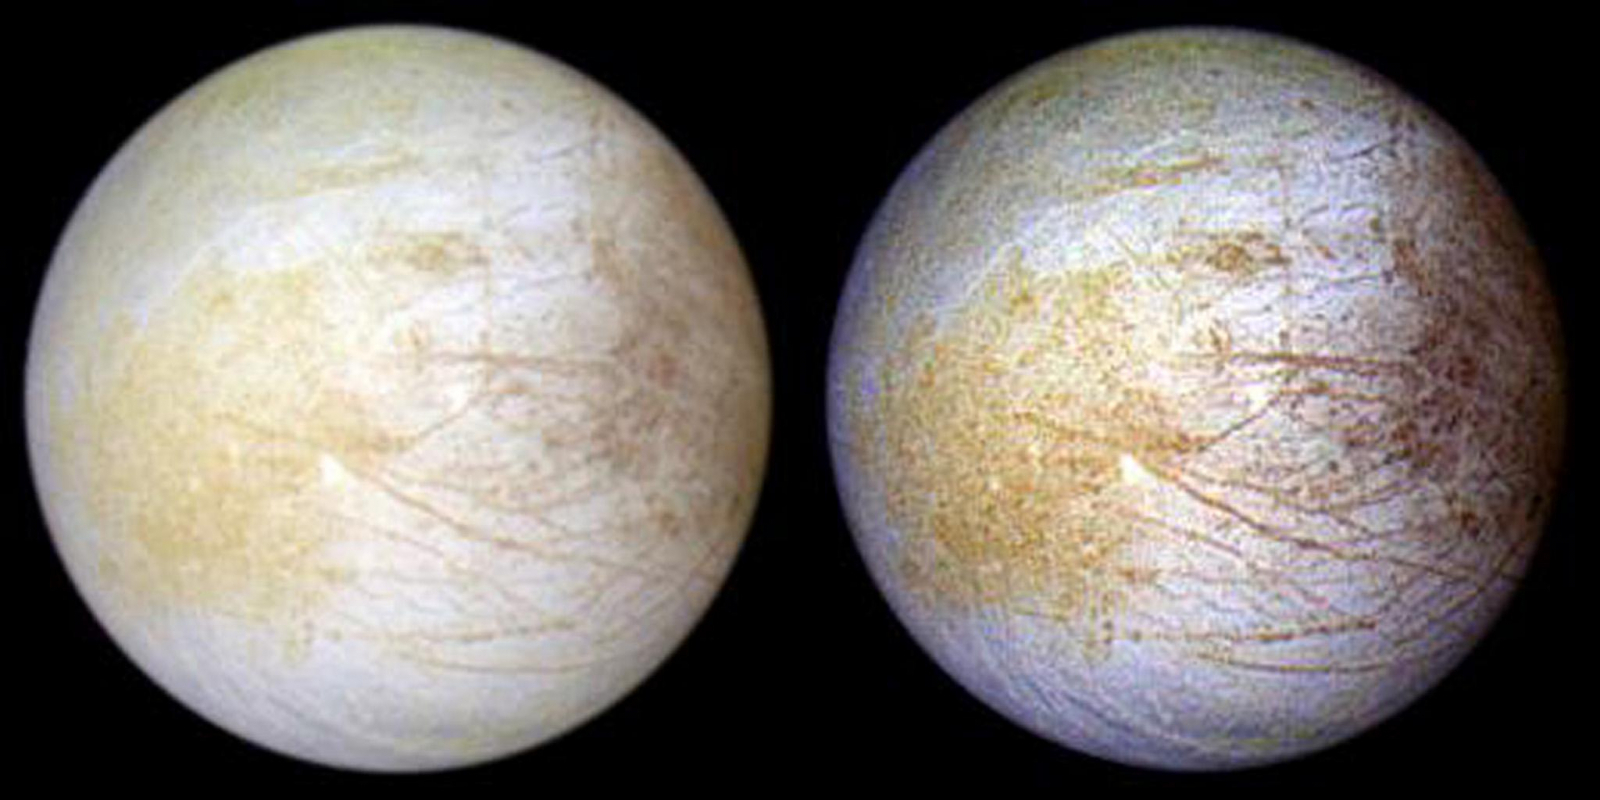 Jupiter's Moon Europa Has Water Vapor - Scientists